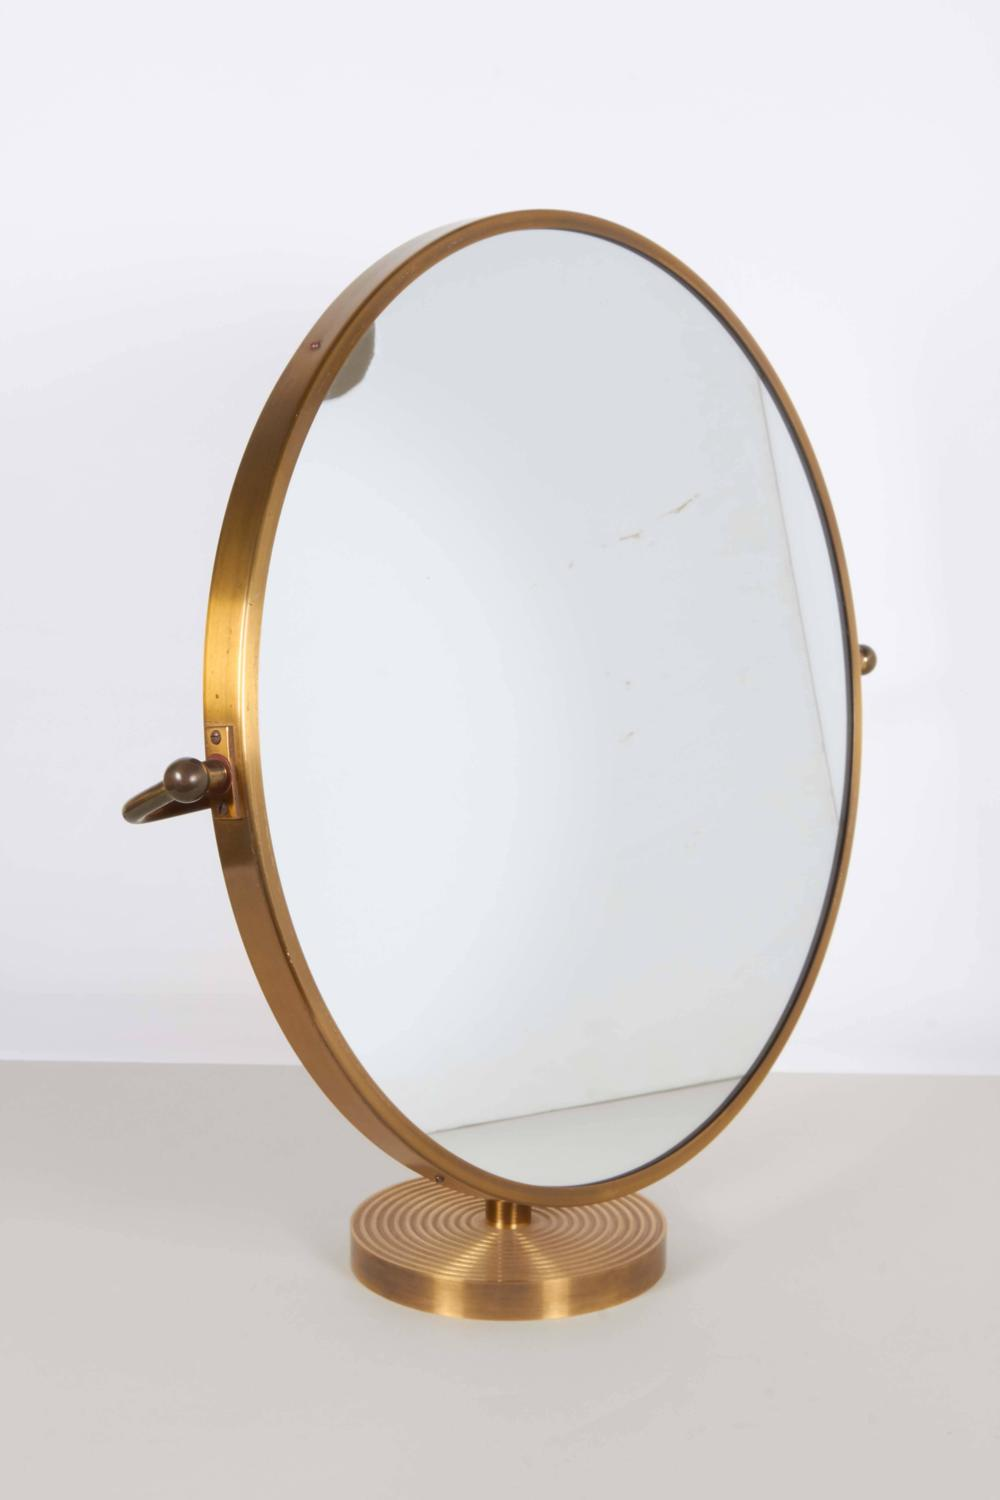 1960s round table mirror on brass stand for sale at 1stdibs. Black Bedroom Furniture Sets. Home Design Ideas